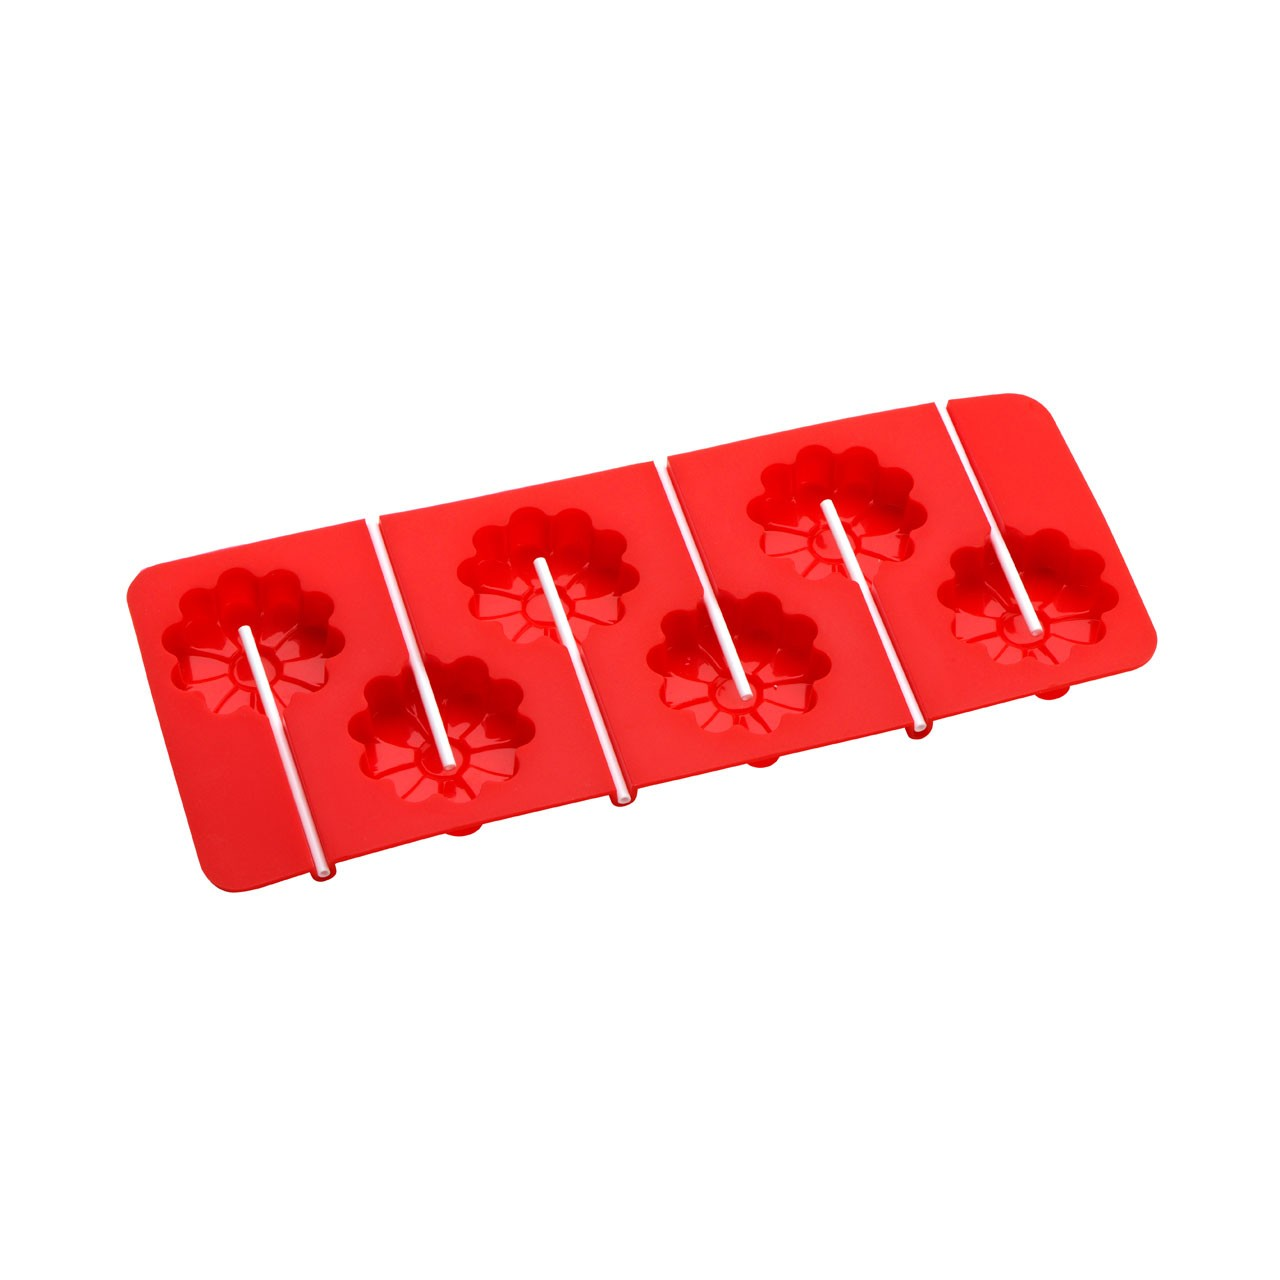 6-Flower Cake Pop Silicone Mould - Red